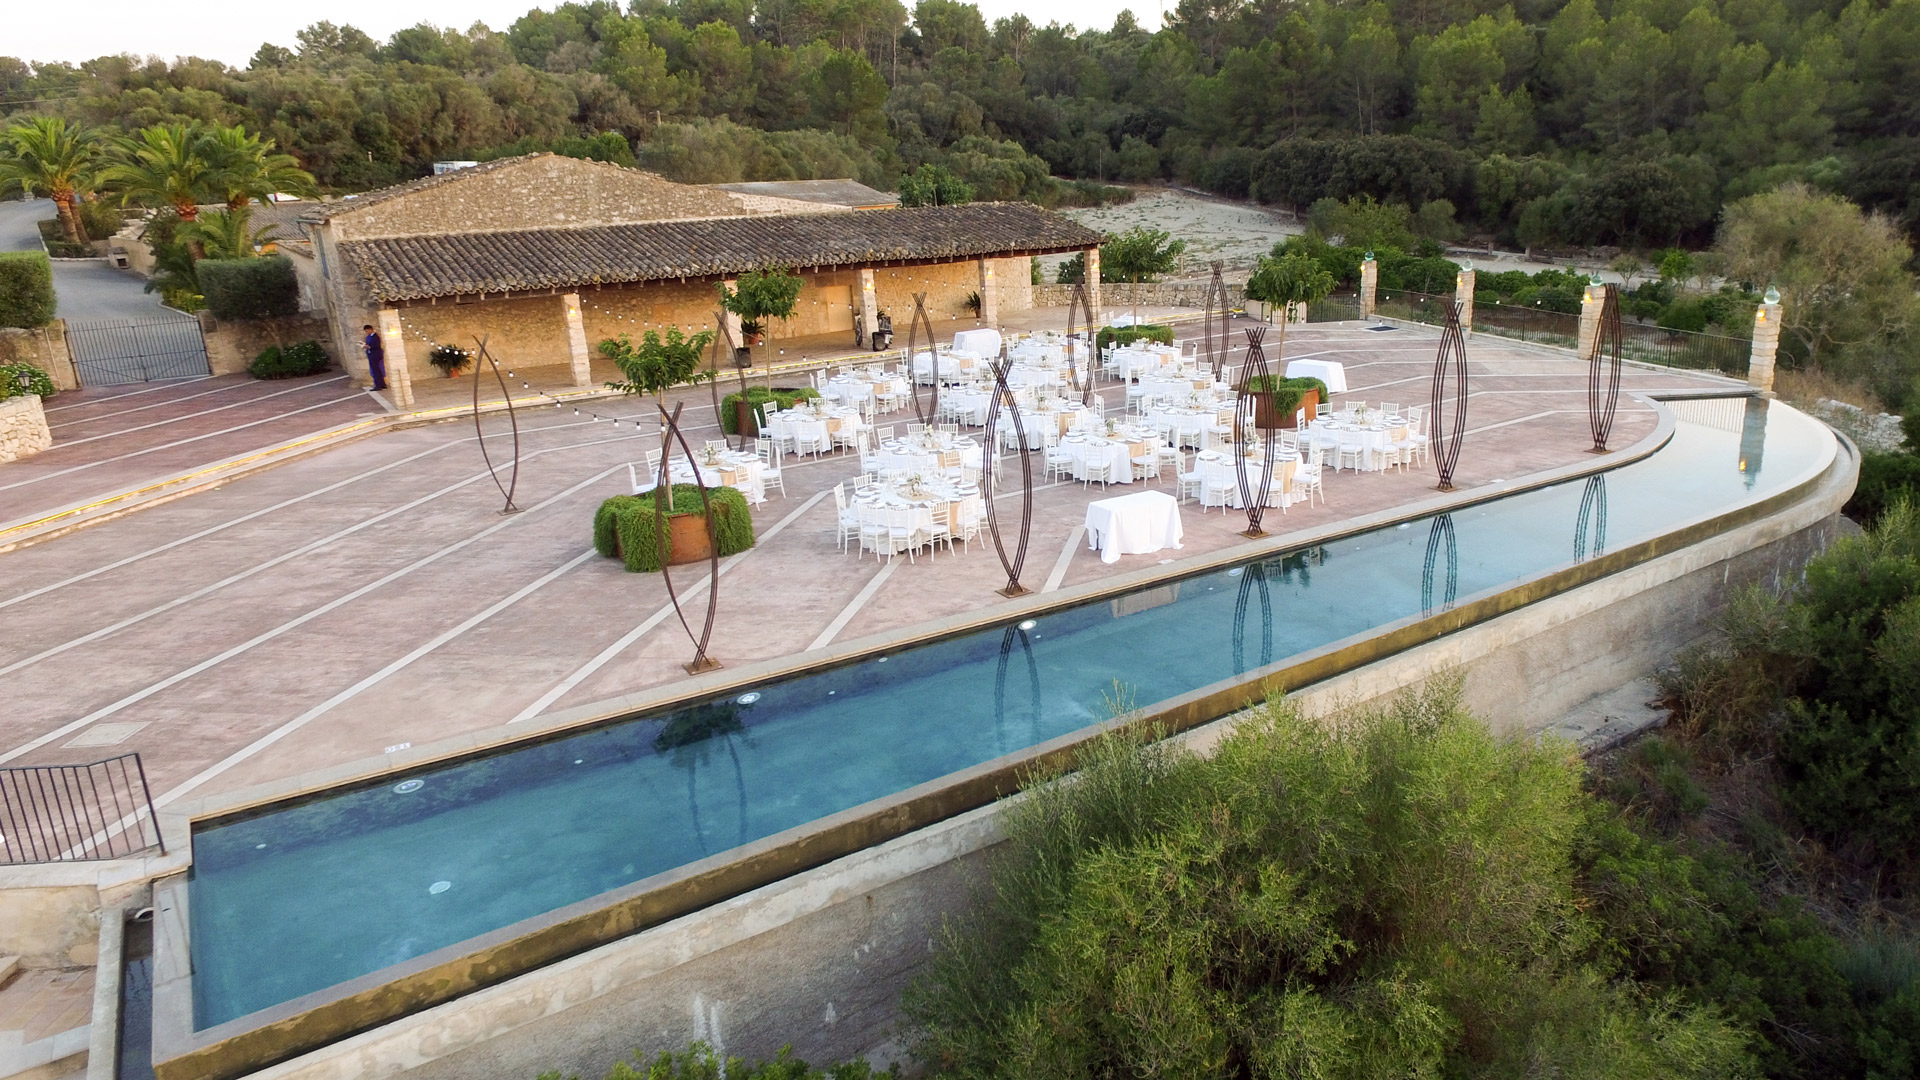 Rural Mallorcan finca where you breathe the peace and tranquility in its natural environment.